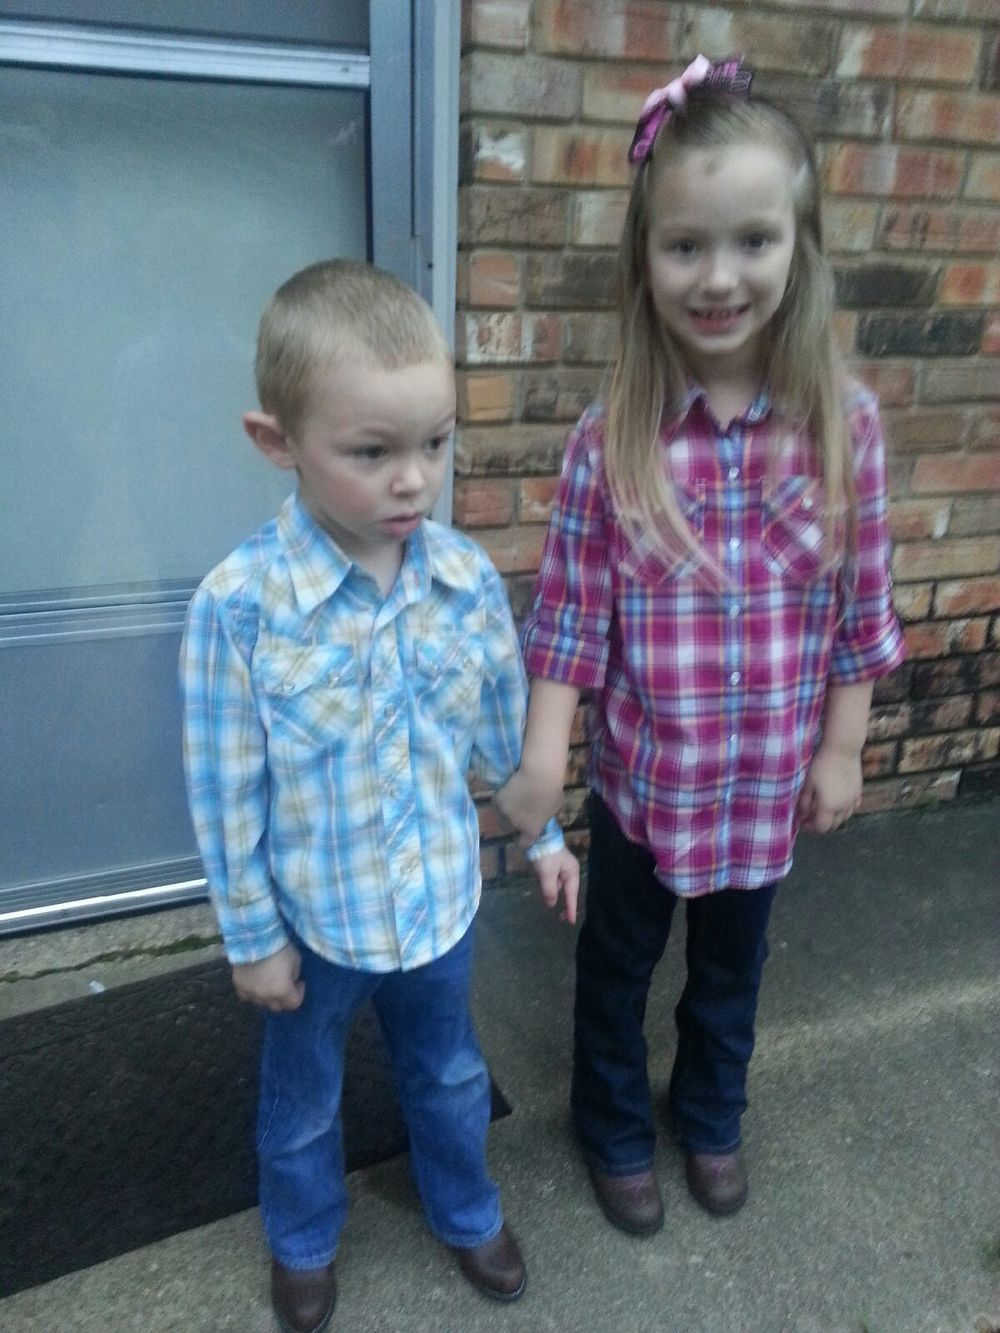 All dressed up for Western Days at school last week! This was Ezra's first time to wear boots...he wasn't too sure about them!